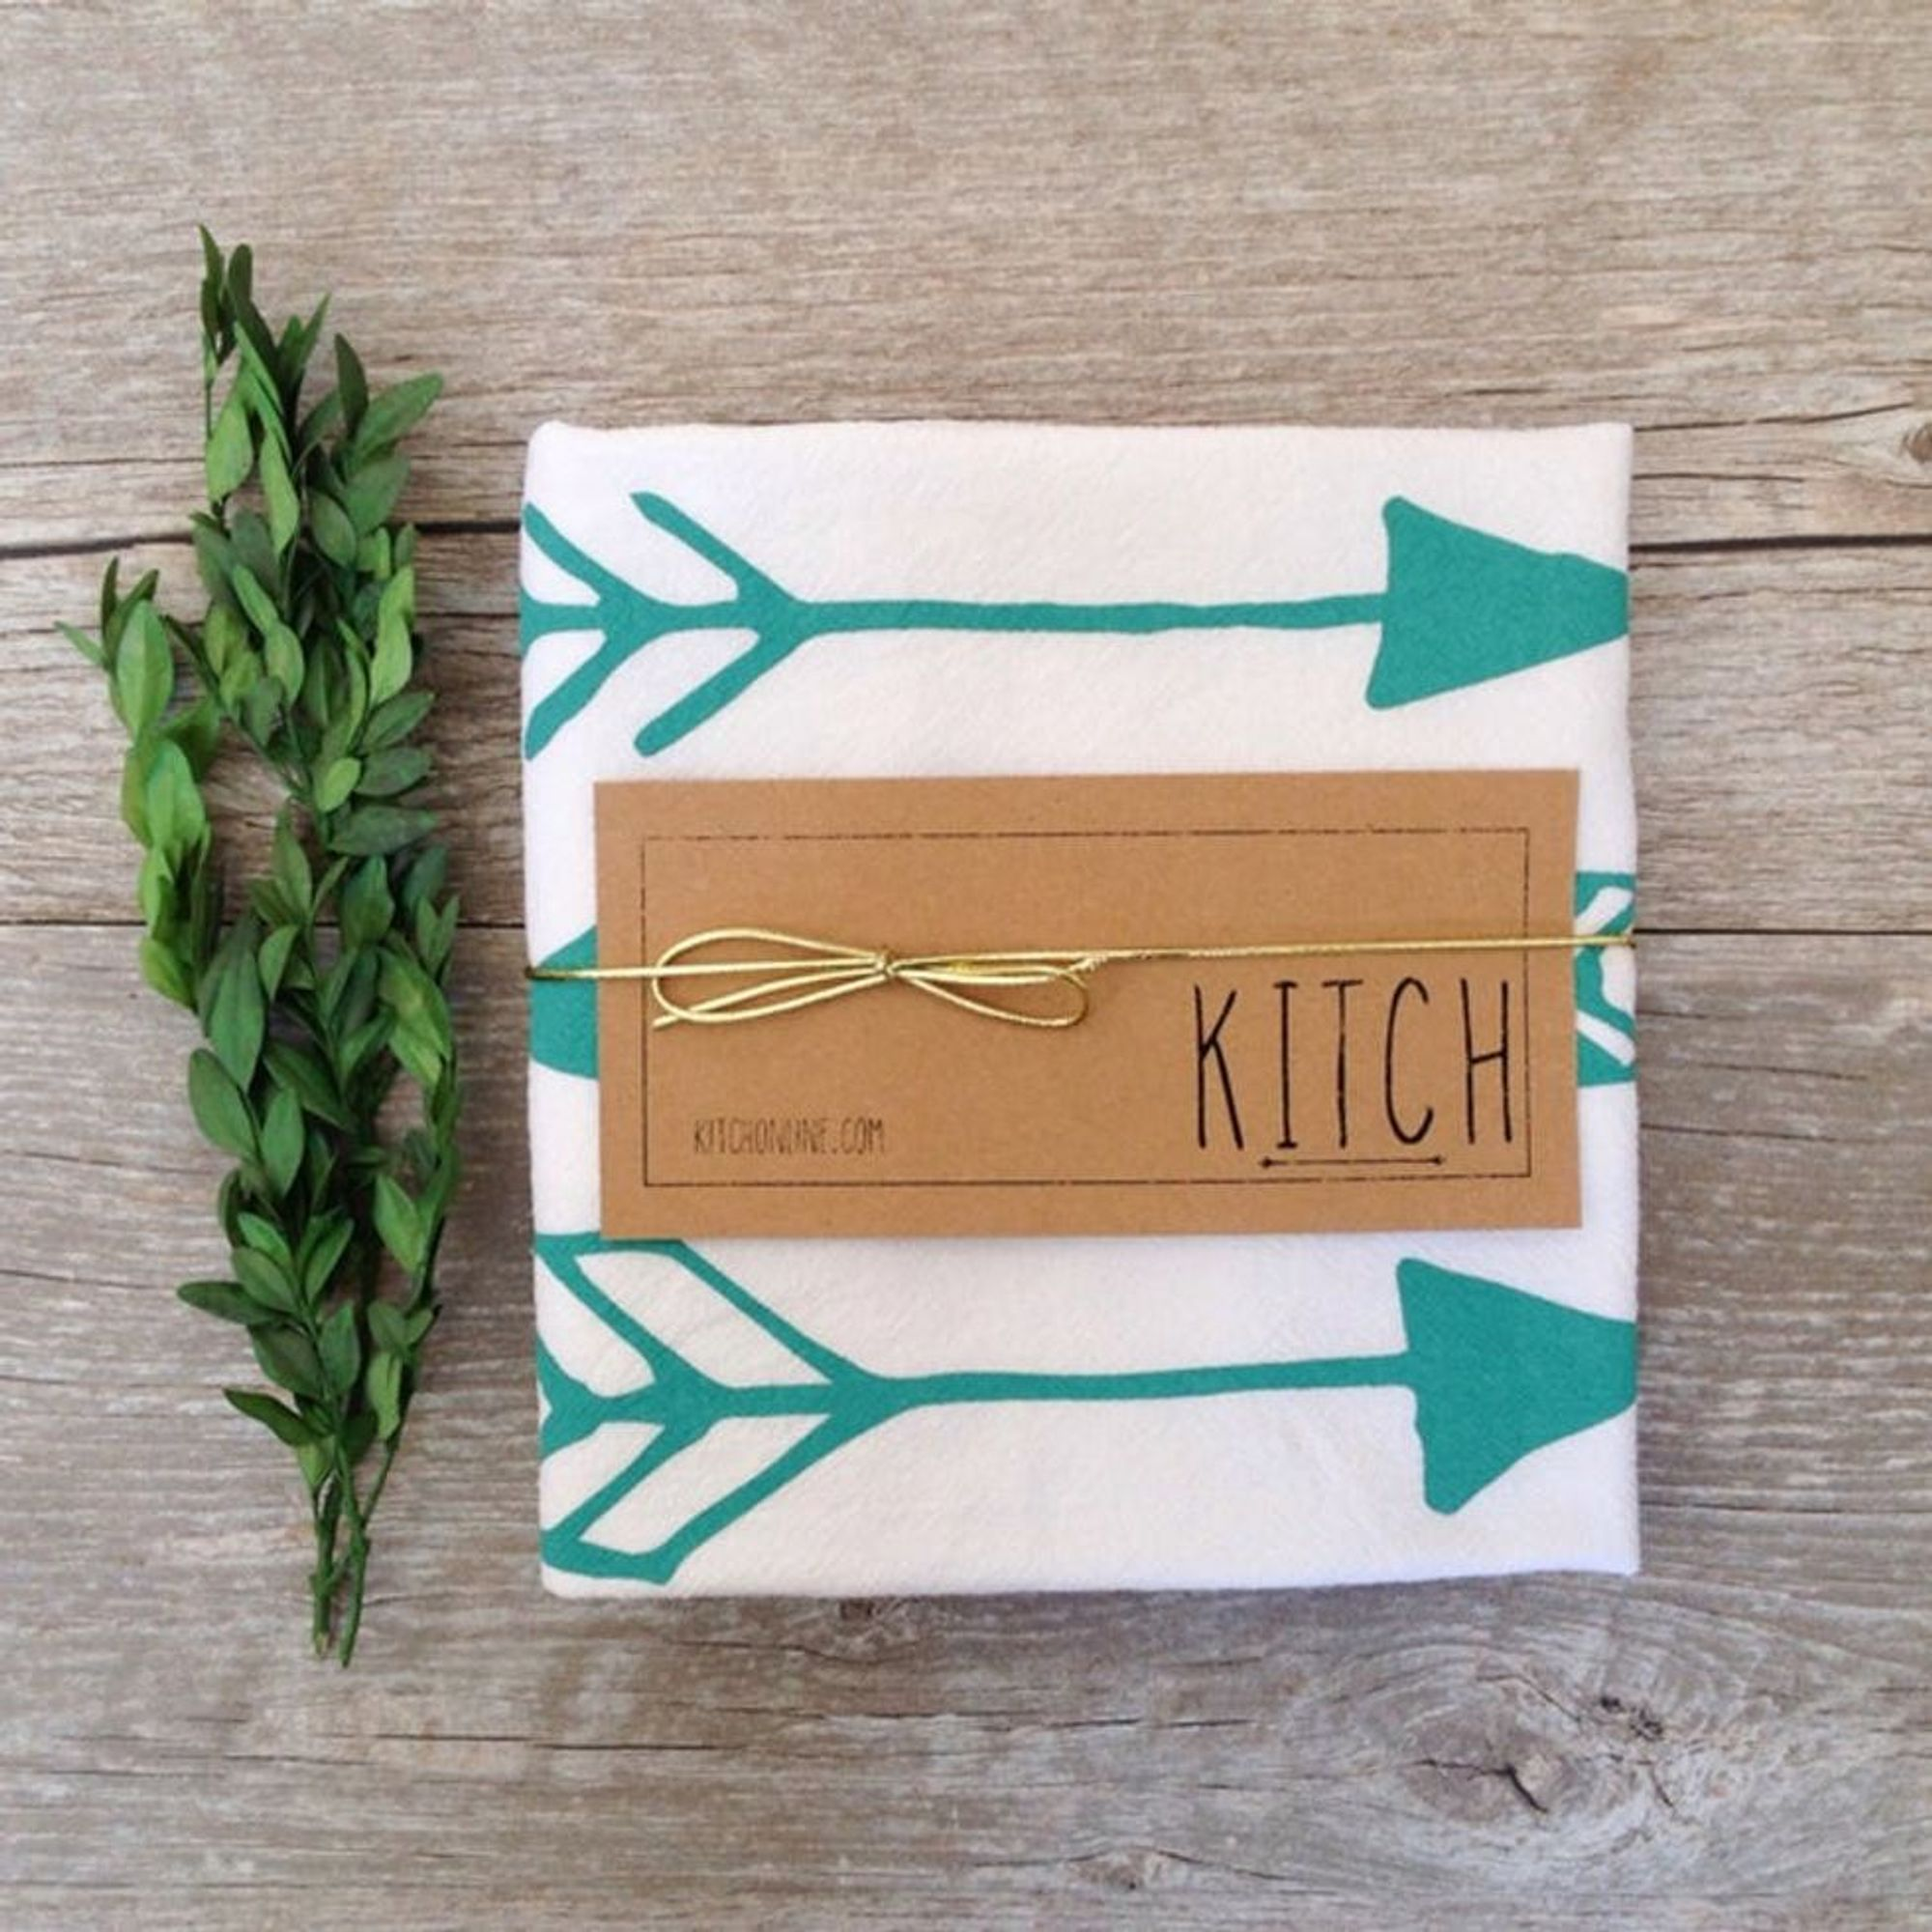 16 Unique Gift Ideas for Your Favorite Newbie Cook